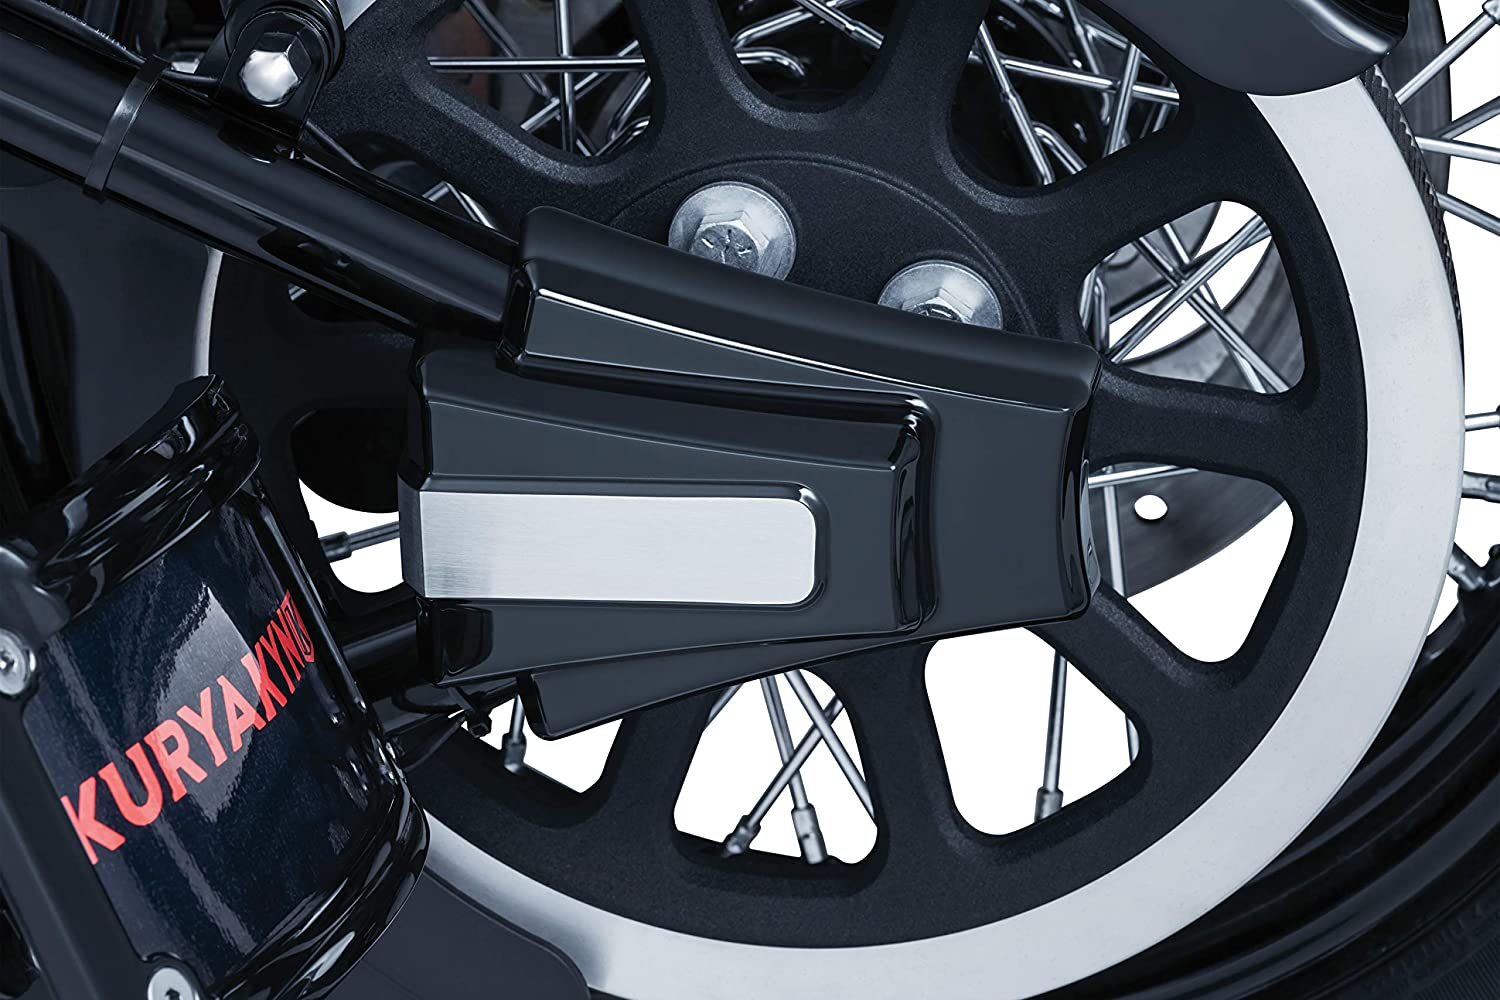 Gloss Black//Brushed Aluminum Rear Axle Covers for 2008-17 Harley-Davidson Softail Motorcycles 1 Pair Kuryakyn 7487 Motorcycle Accent Accessory